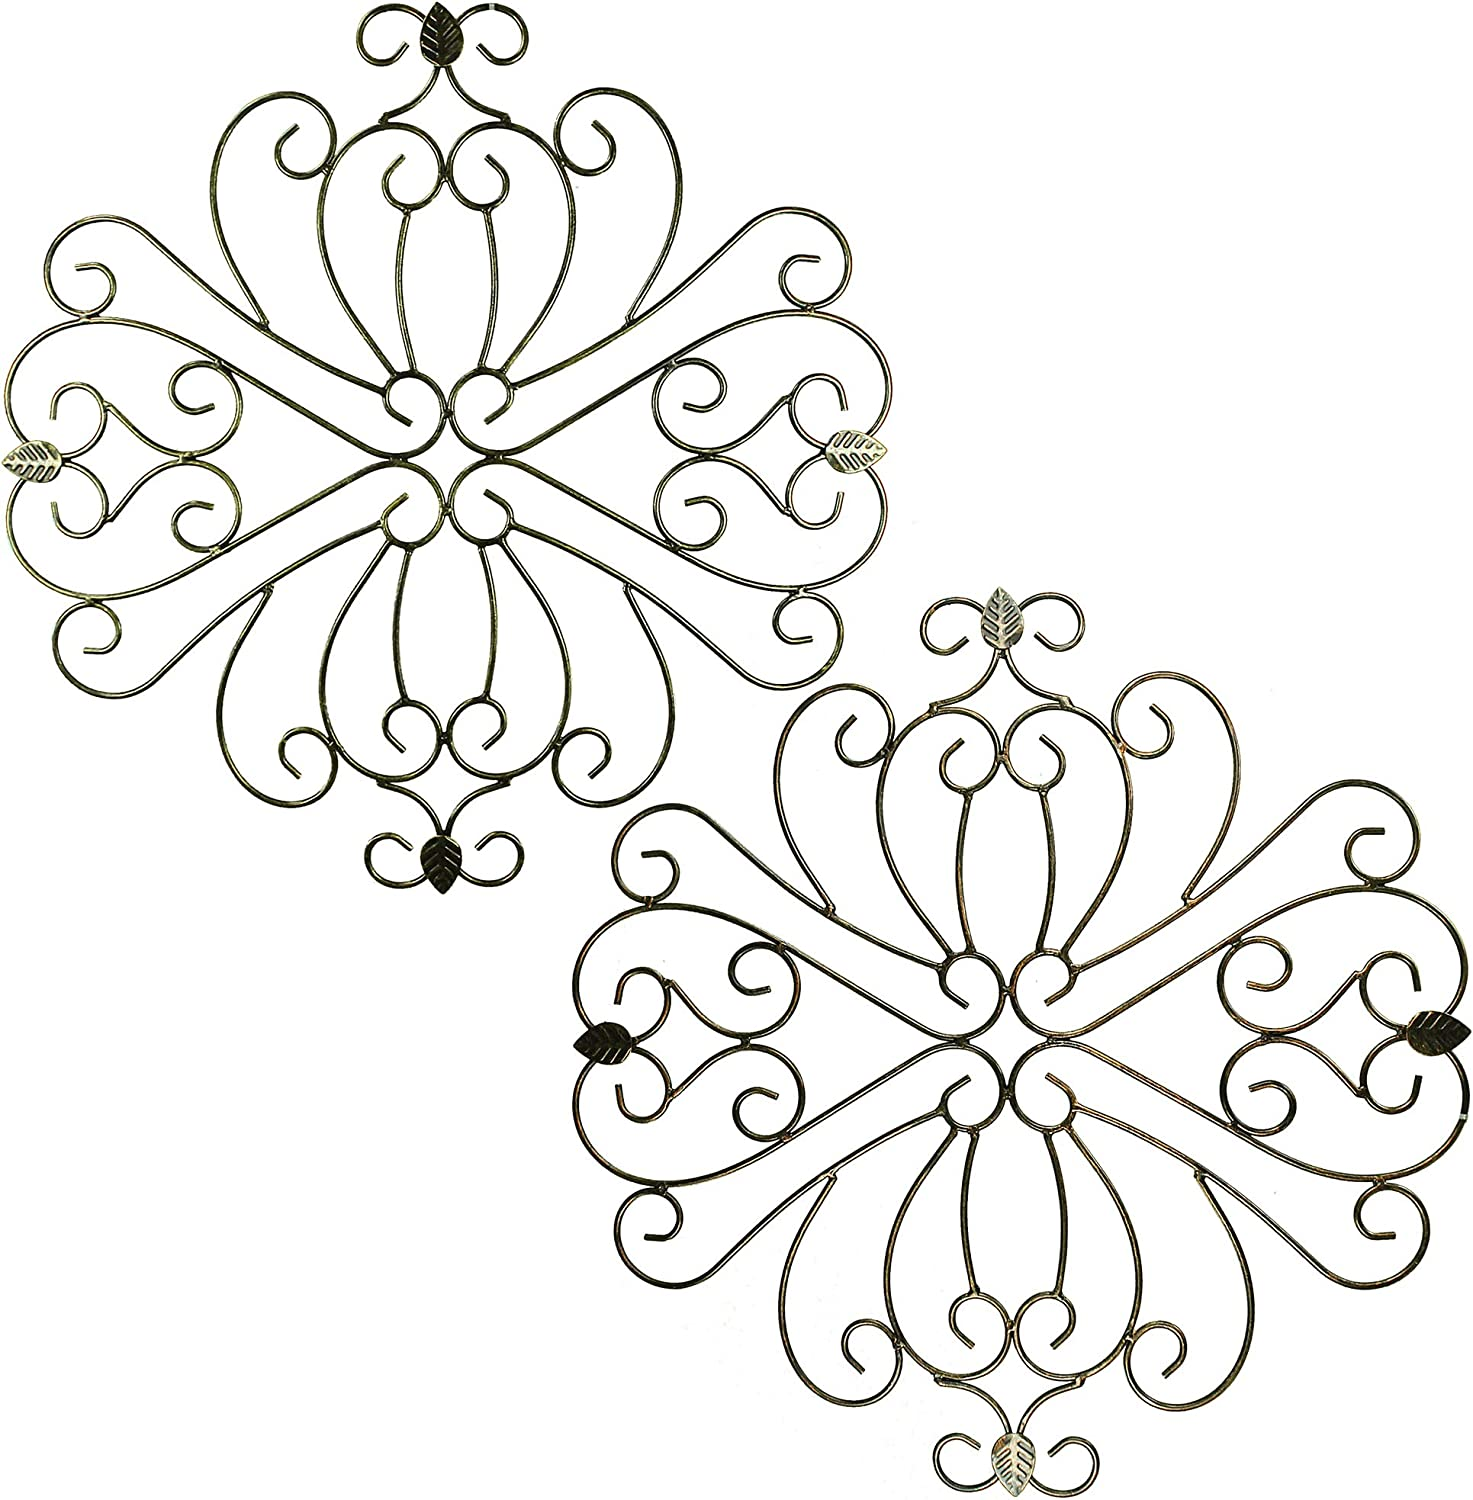 Benjara Metal Wall Decor with Intricate Design and Leaf Accents, Assortment of Two, Gray